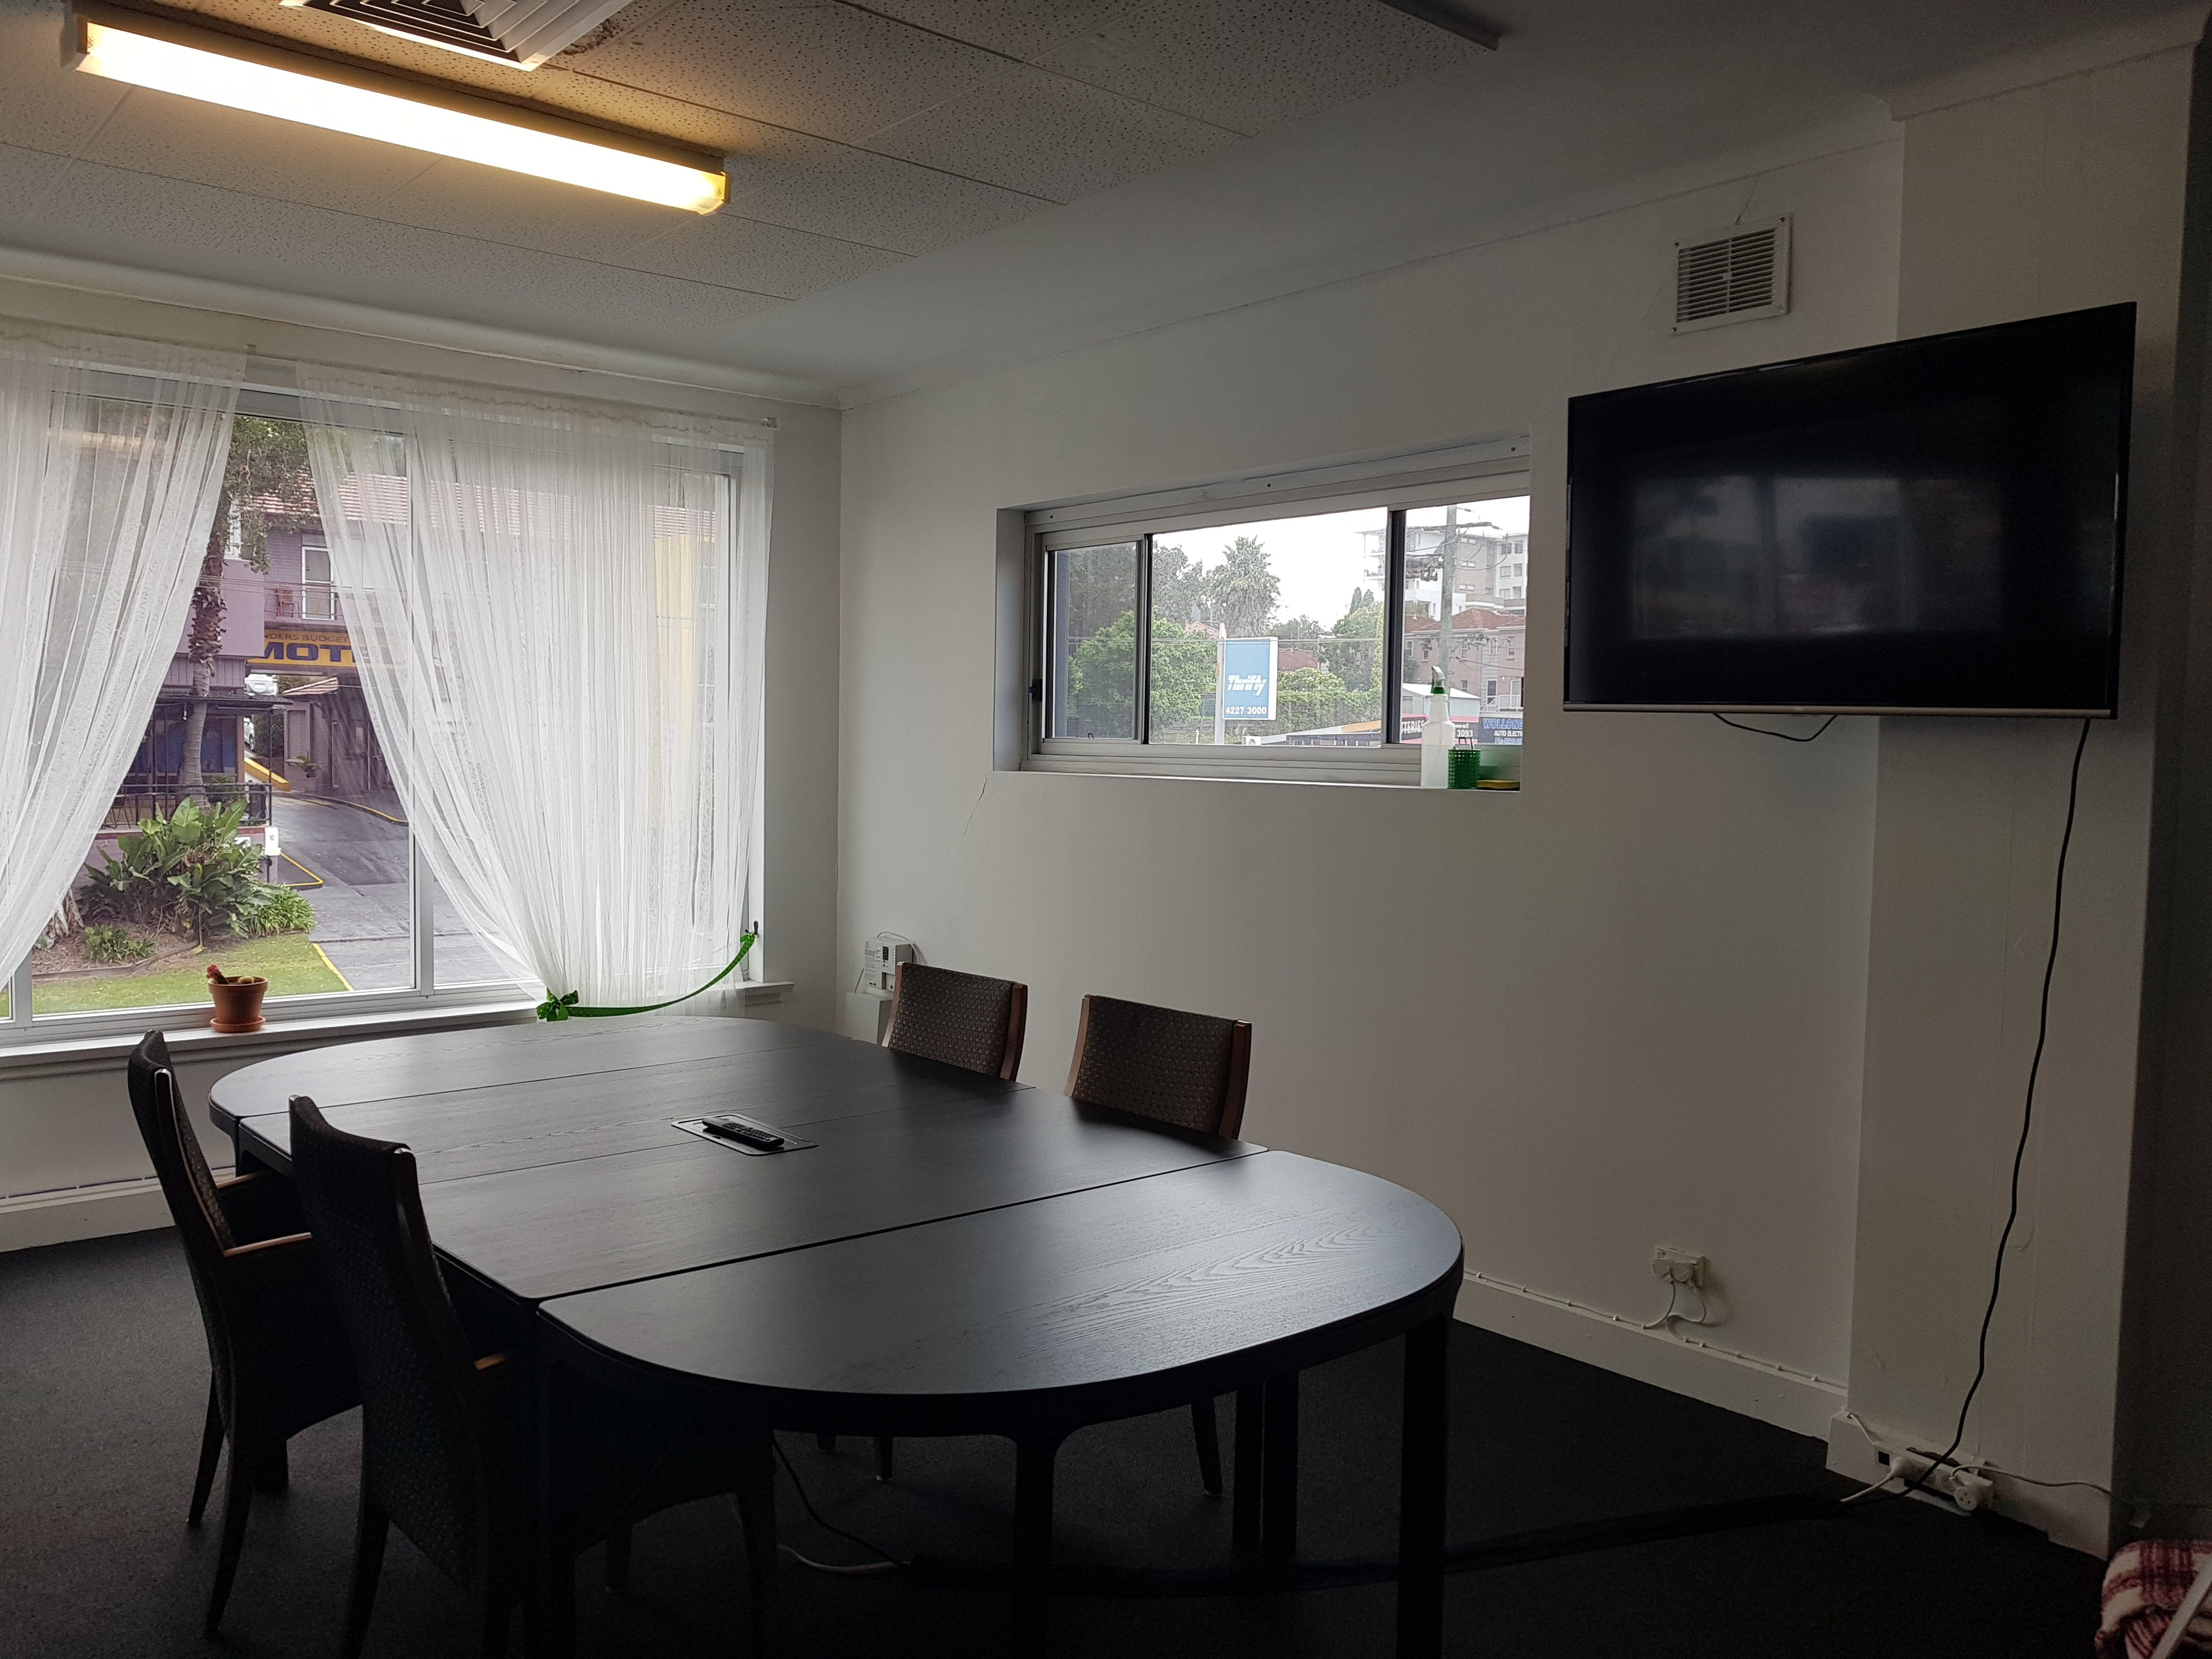 For 4 , meeting room at AVT Creative Co-Lab Space, image 2